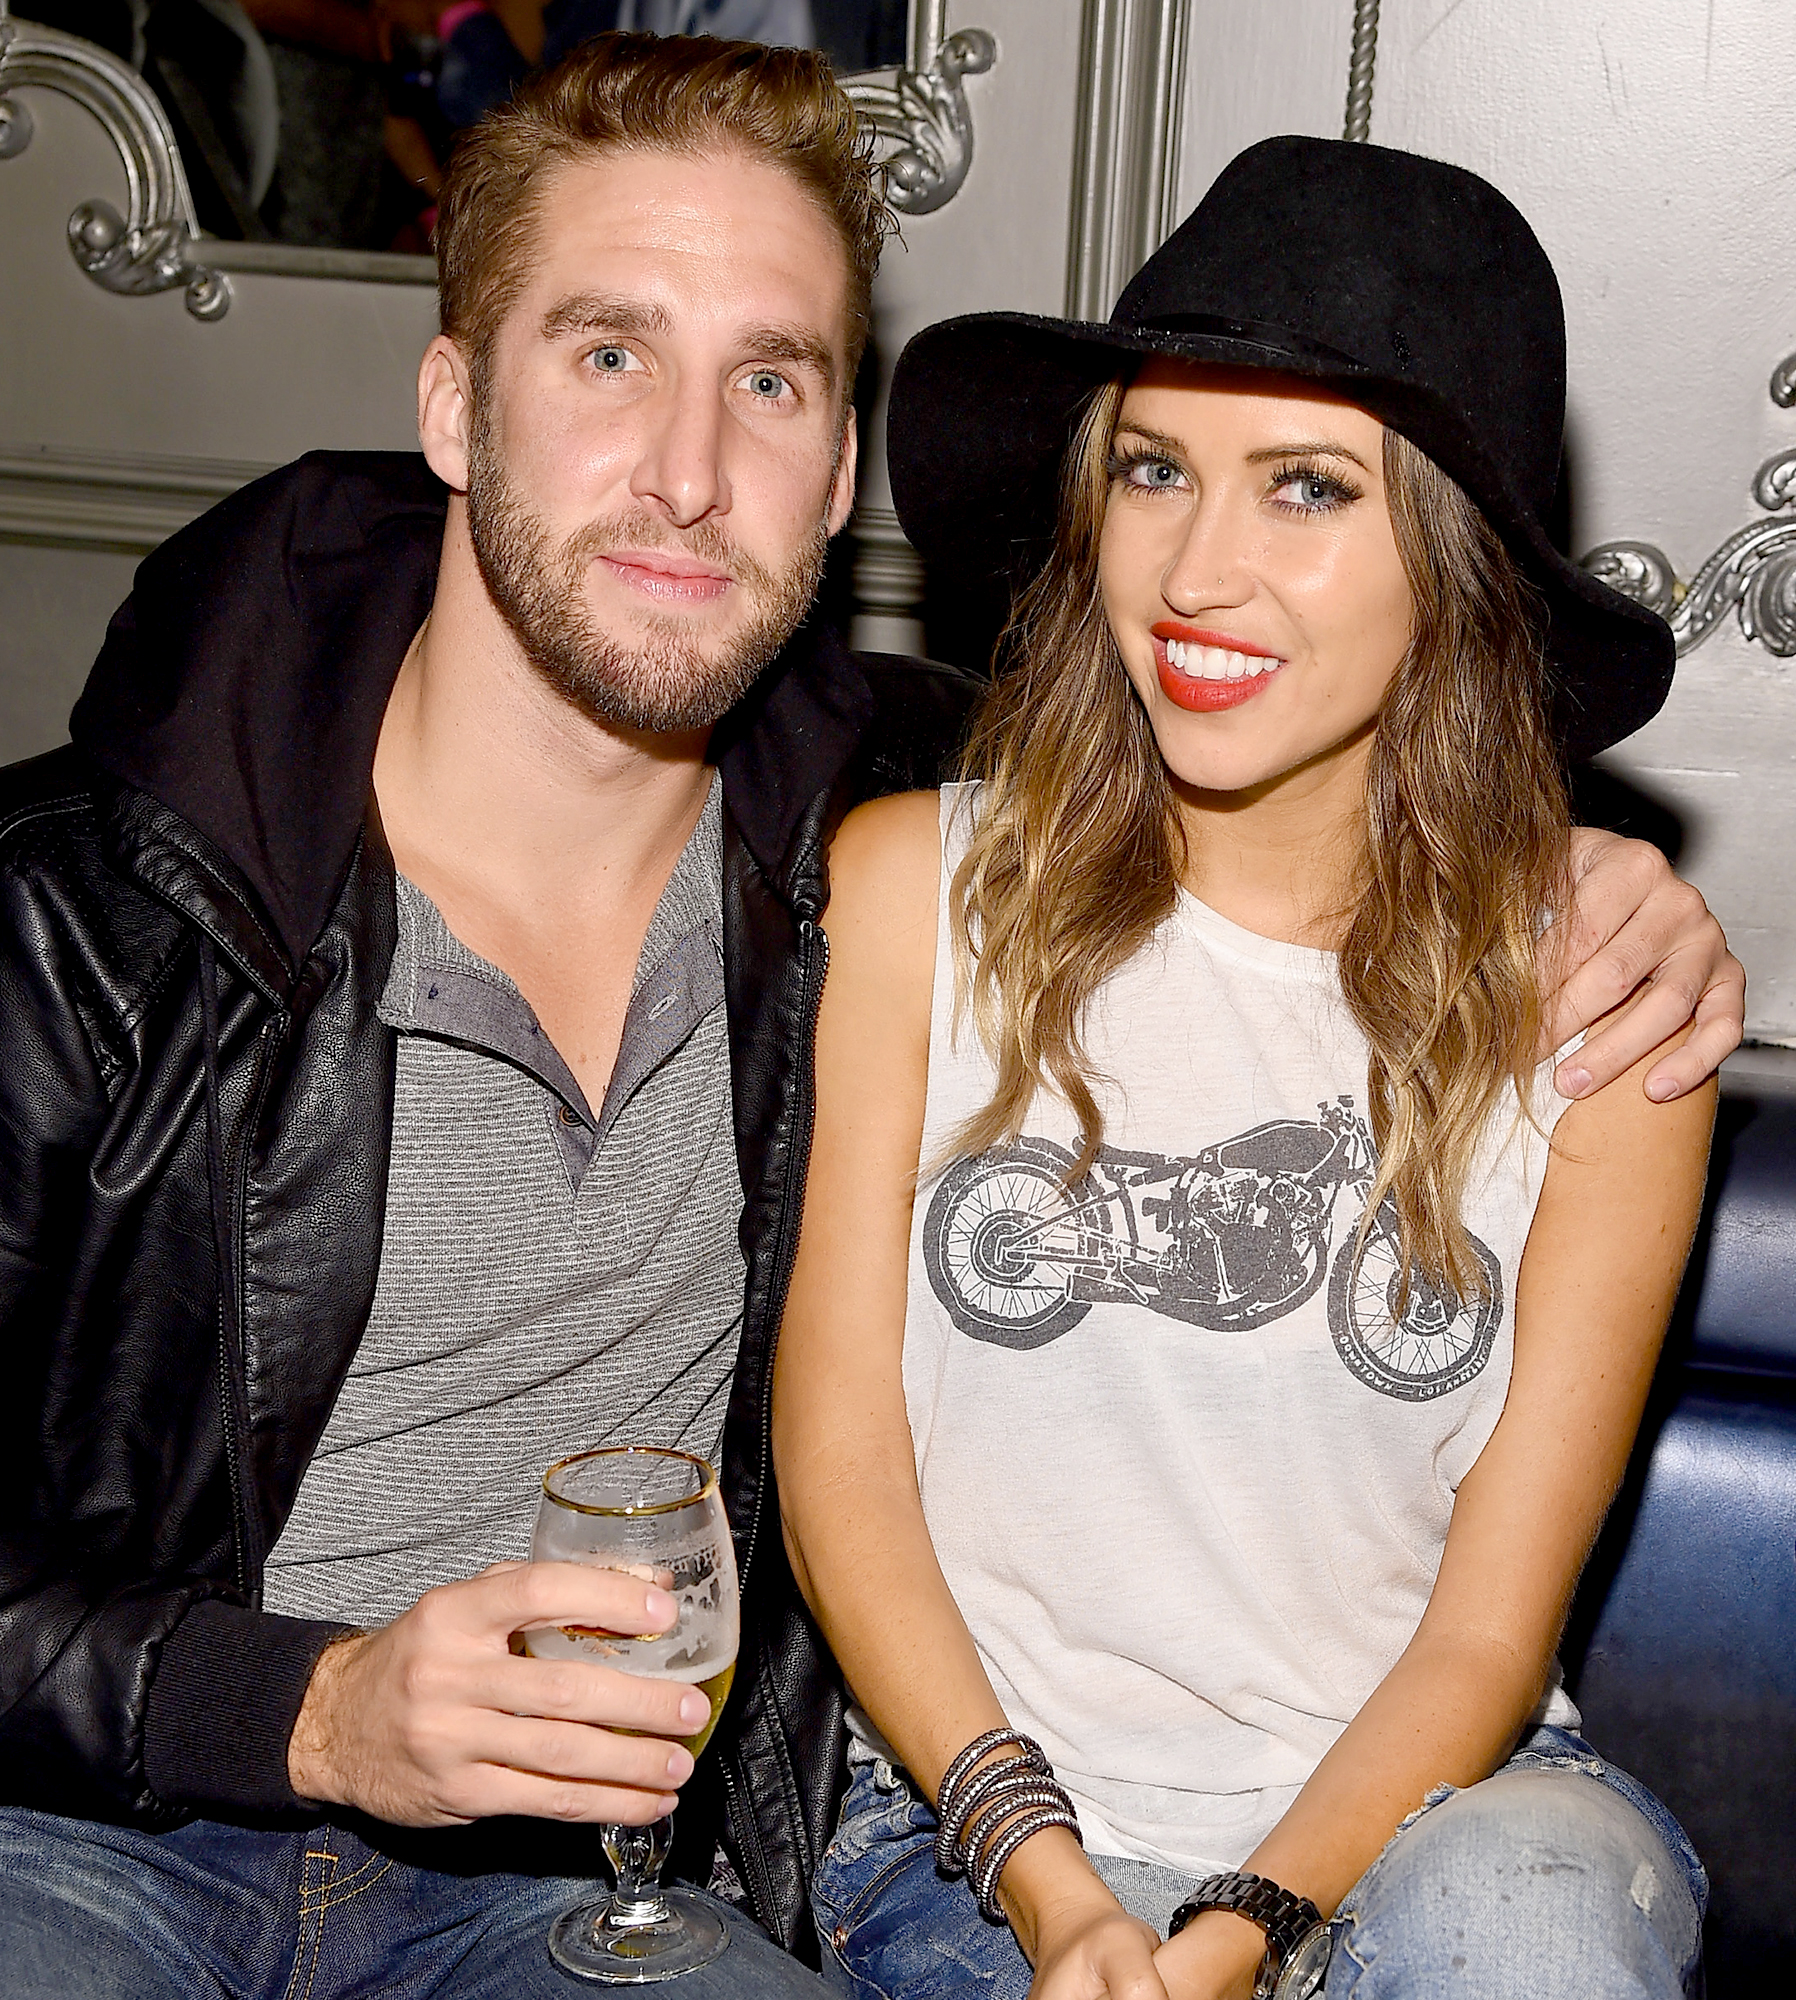 Kaitlyn Bristowe Shares Breakup Journey With Shawn Booth: 'We Held Off So Many Times Because We Didn't Want to Face' the Public - Shawn Booth and Kaitlyn Bristowe attend the NYLON Magazine Rebel Fashion Week party at Up & Down in New York City on September 10, 2015.